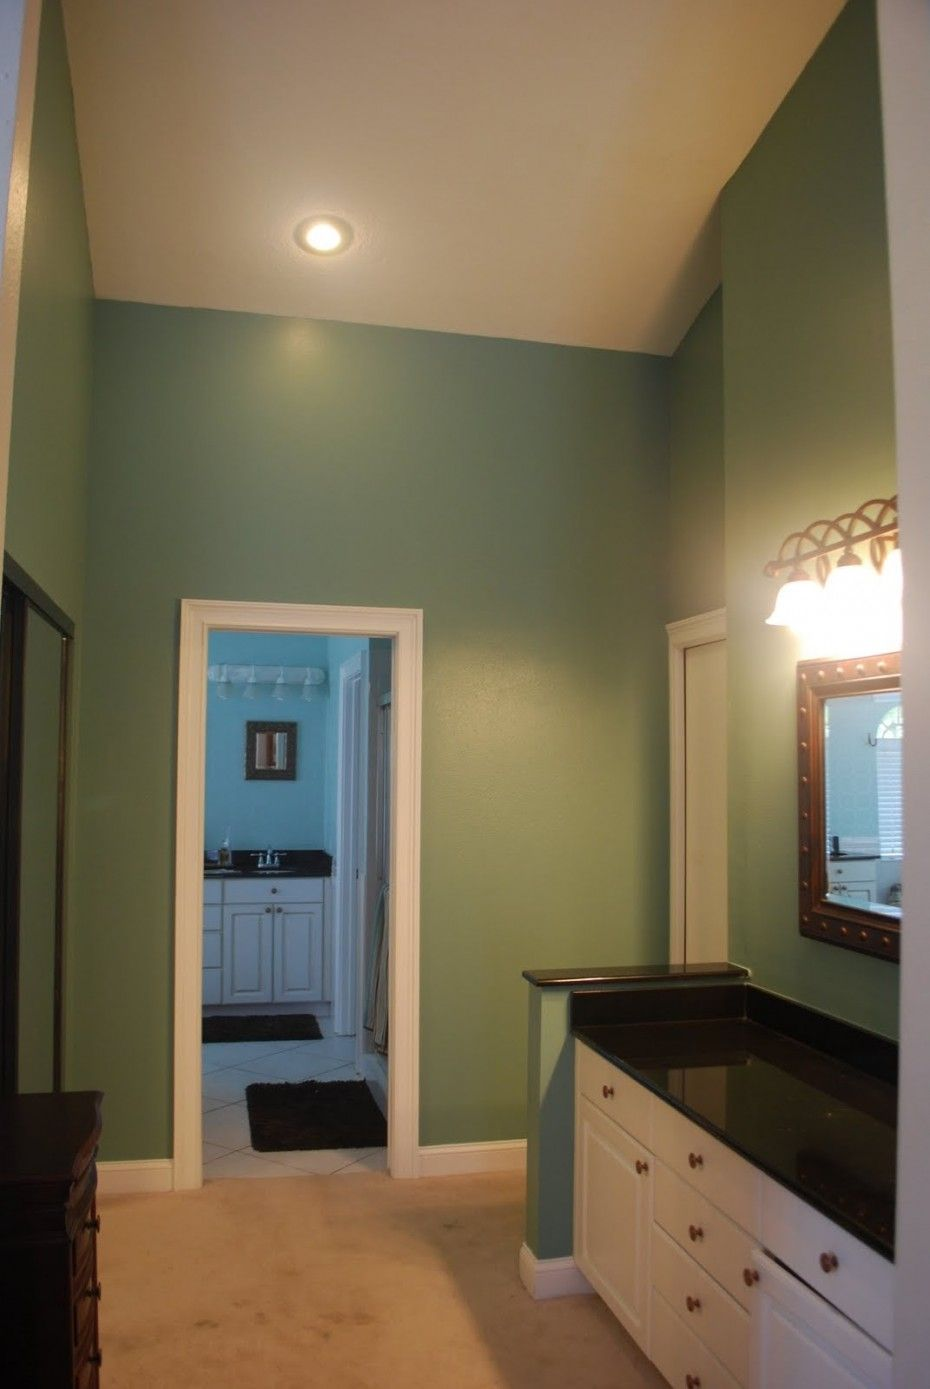 Bathroom Paint Colors Ideas Warm Green Bathroom Painting Home Ideas Pinterest Green